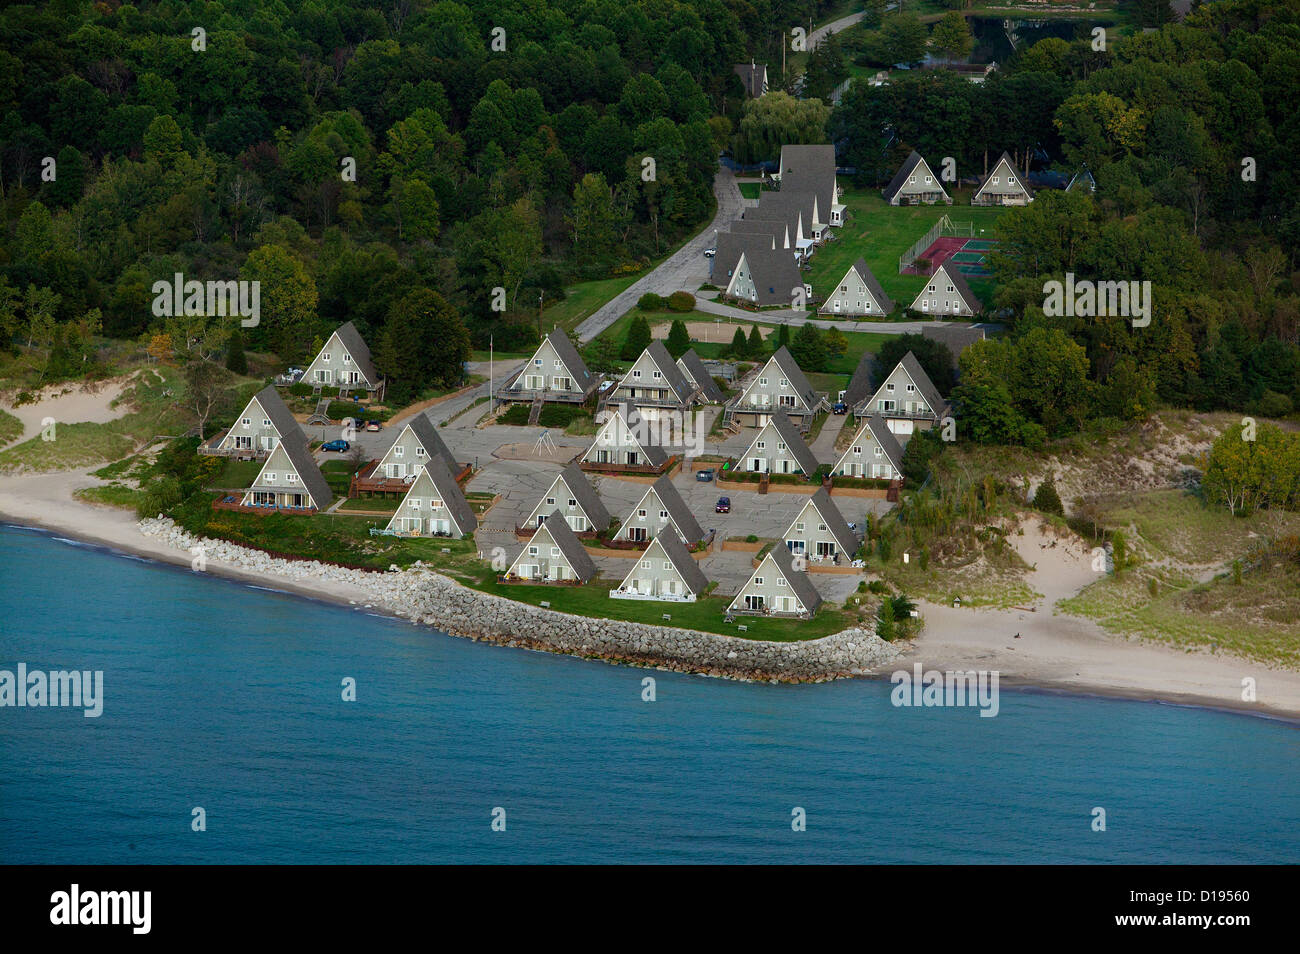 aerial photograph A frame vacation homes Lake Michigan shoreline, Stevensville, MI - Stock Image